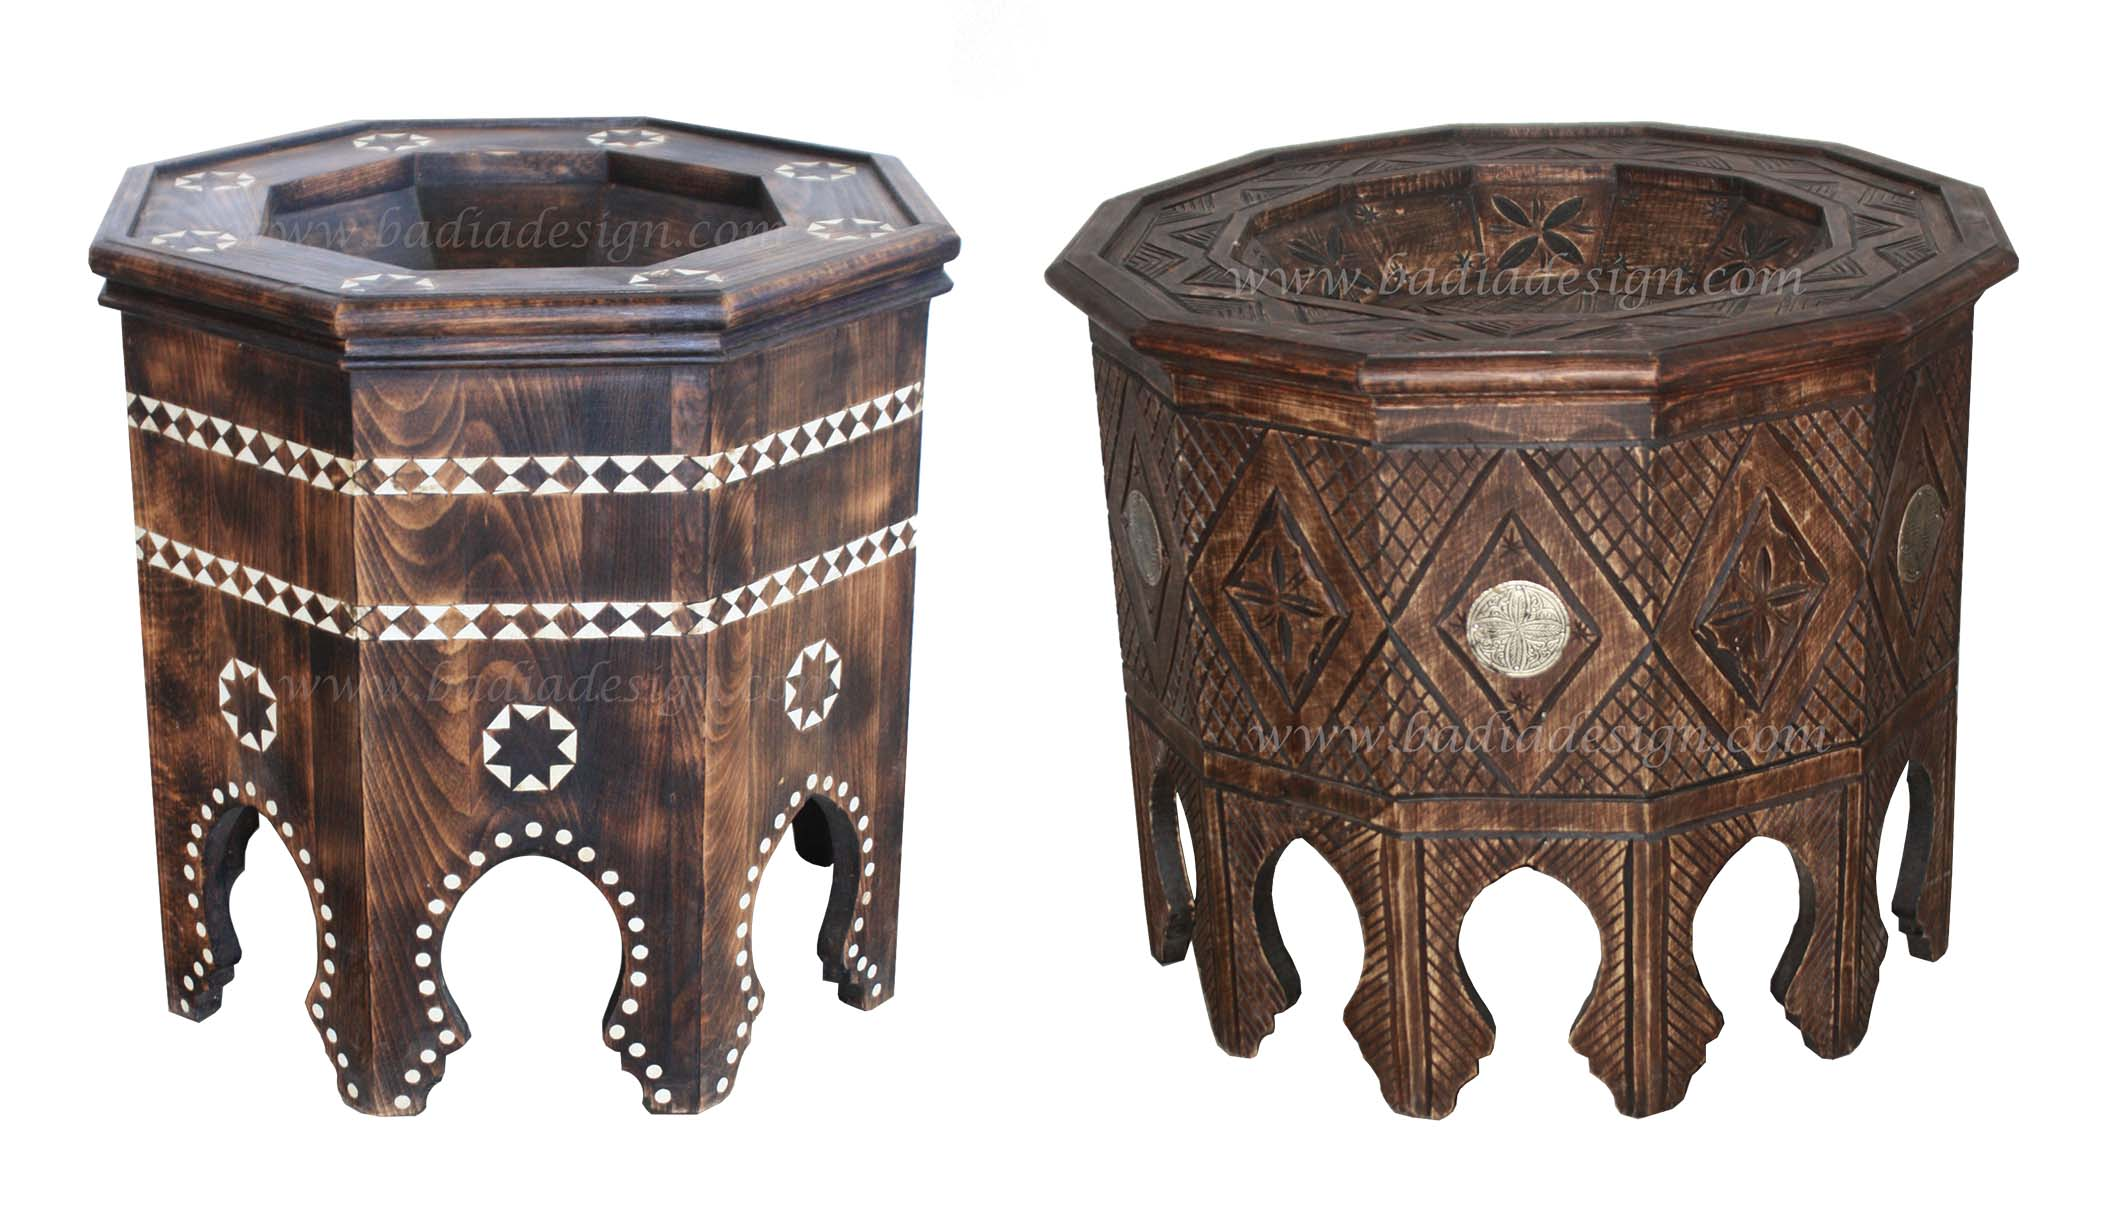 moroccan-wooden-side-table-cw-st043.jpg